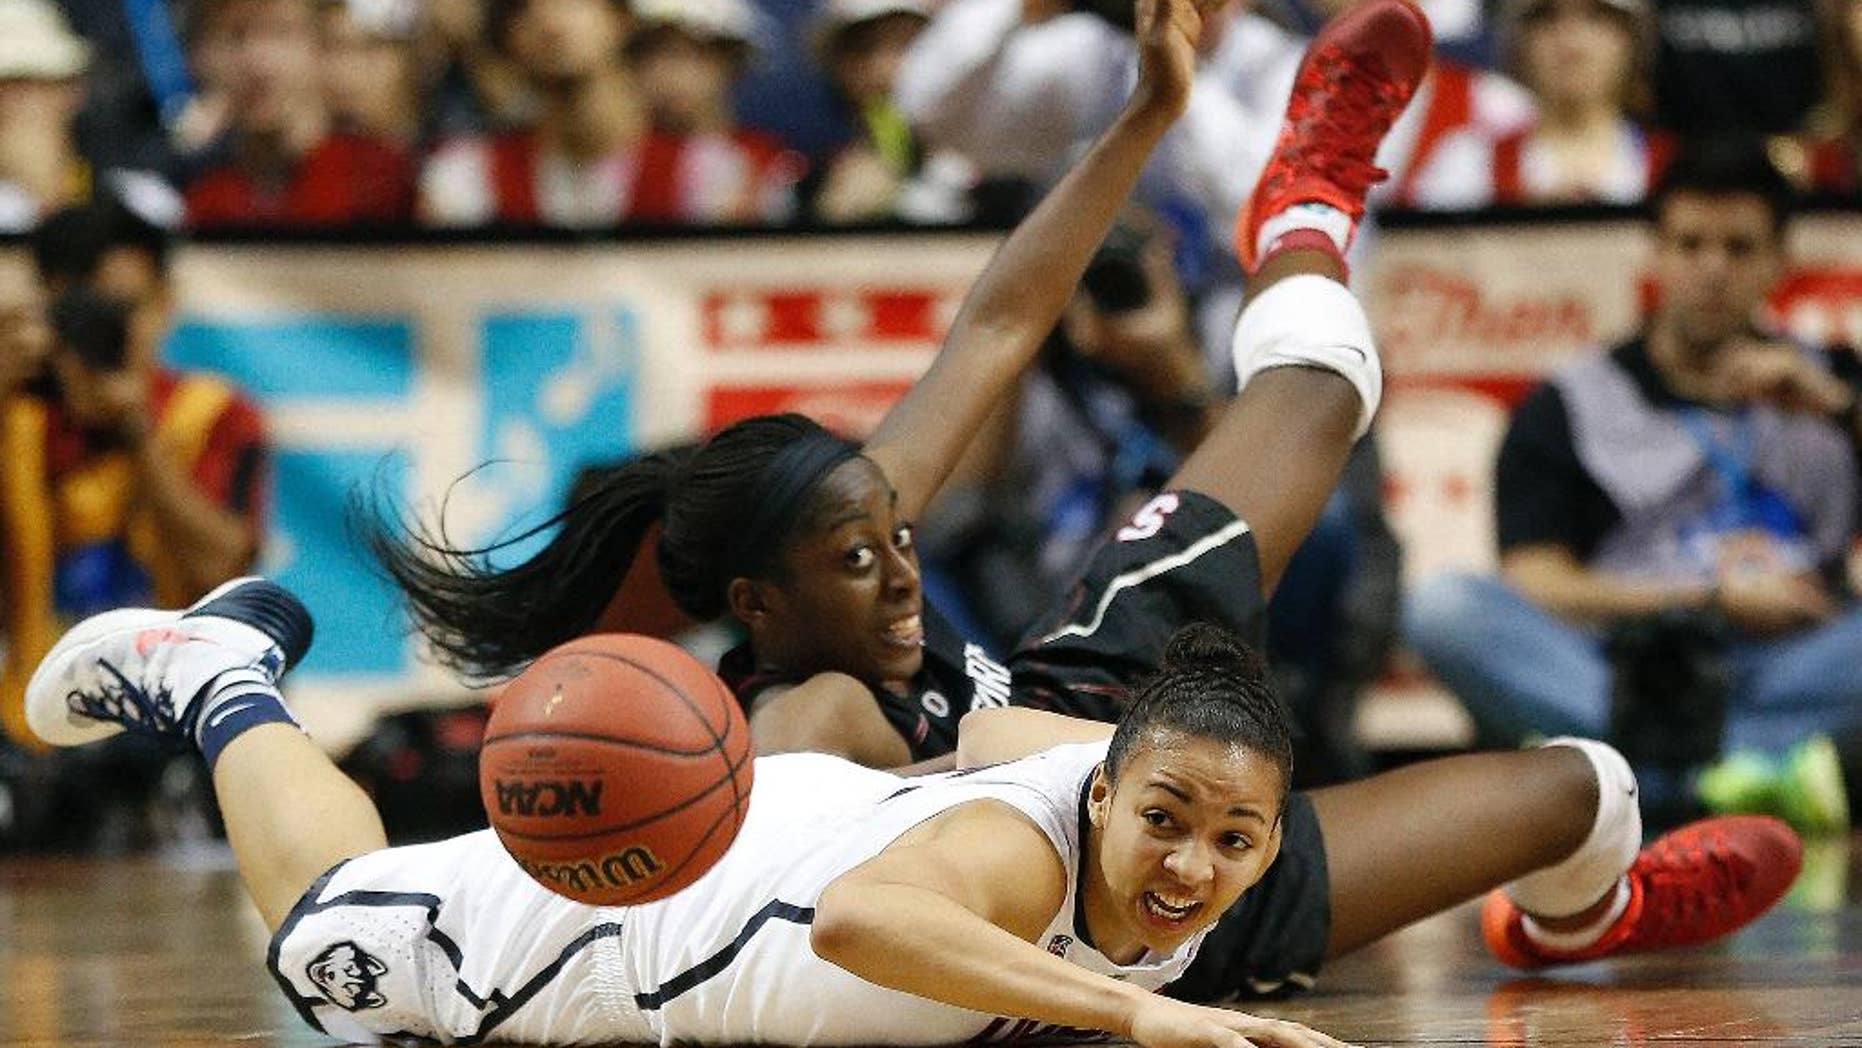 Stanford forward Chiney Ogwumike (13) and Connecticut guard Bria Hartley (14) collide during the second half of the semifinal game in the Final Four of the NCAA women's college basketball tournament, Sunday, April 6, 2014, in Nashville, Tenn. Connecticut won 75-56. (AP Photo/John Bazemore)